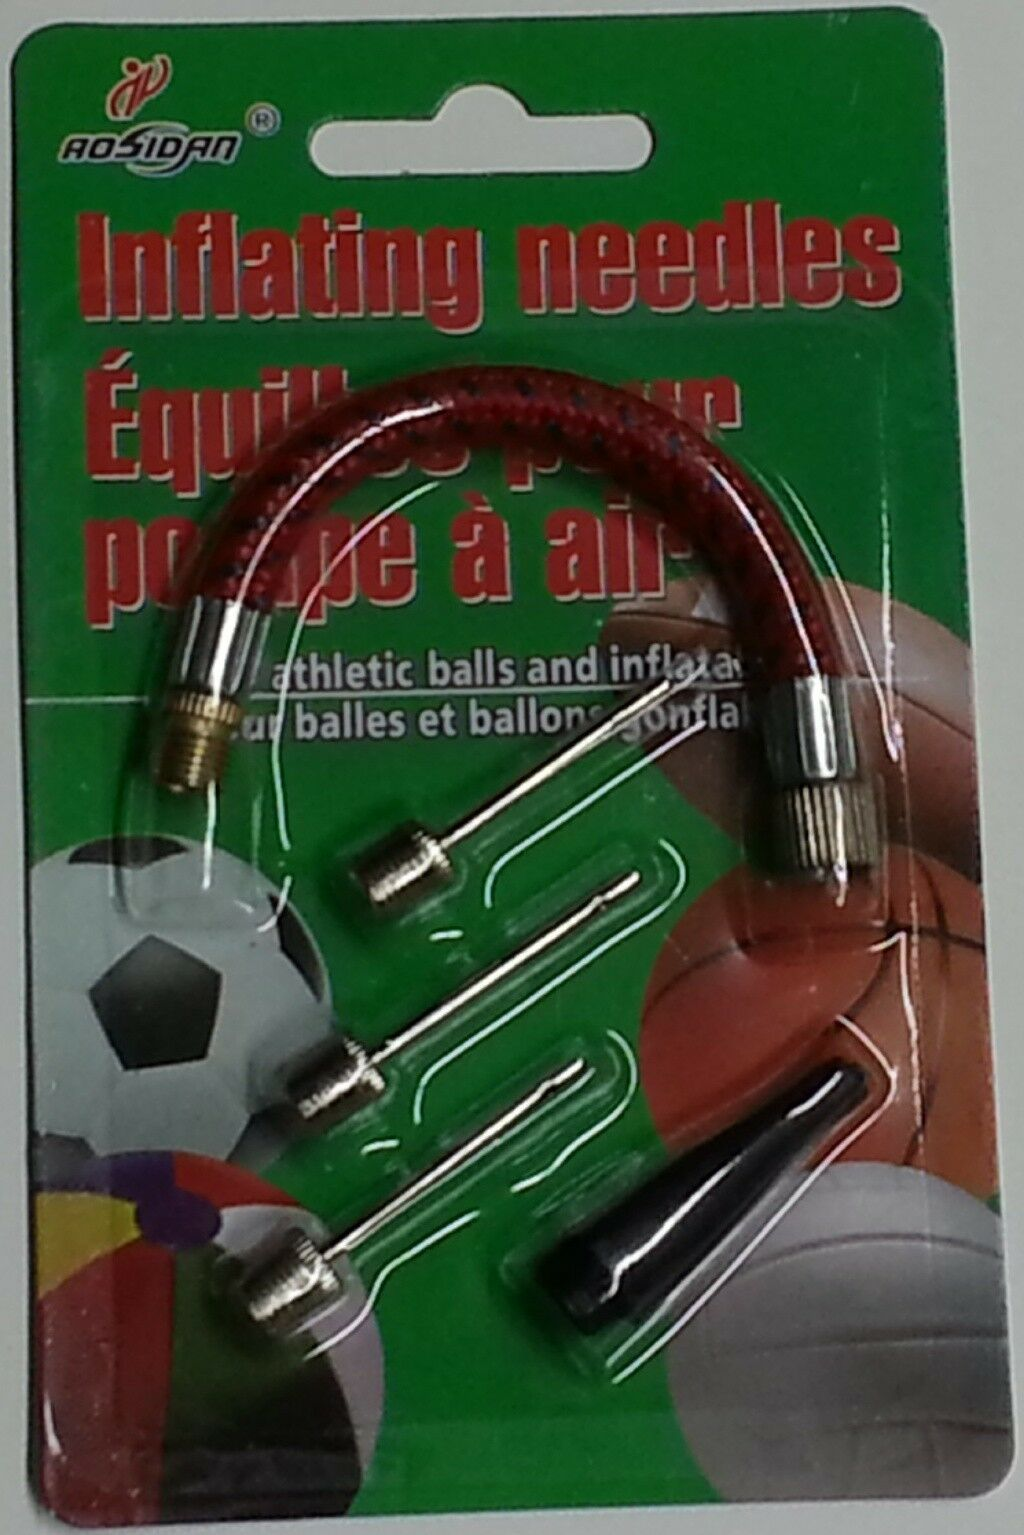 Free Postage For inflating and athletics ball Inflating Needles 5pc